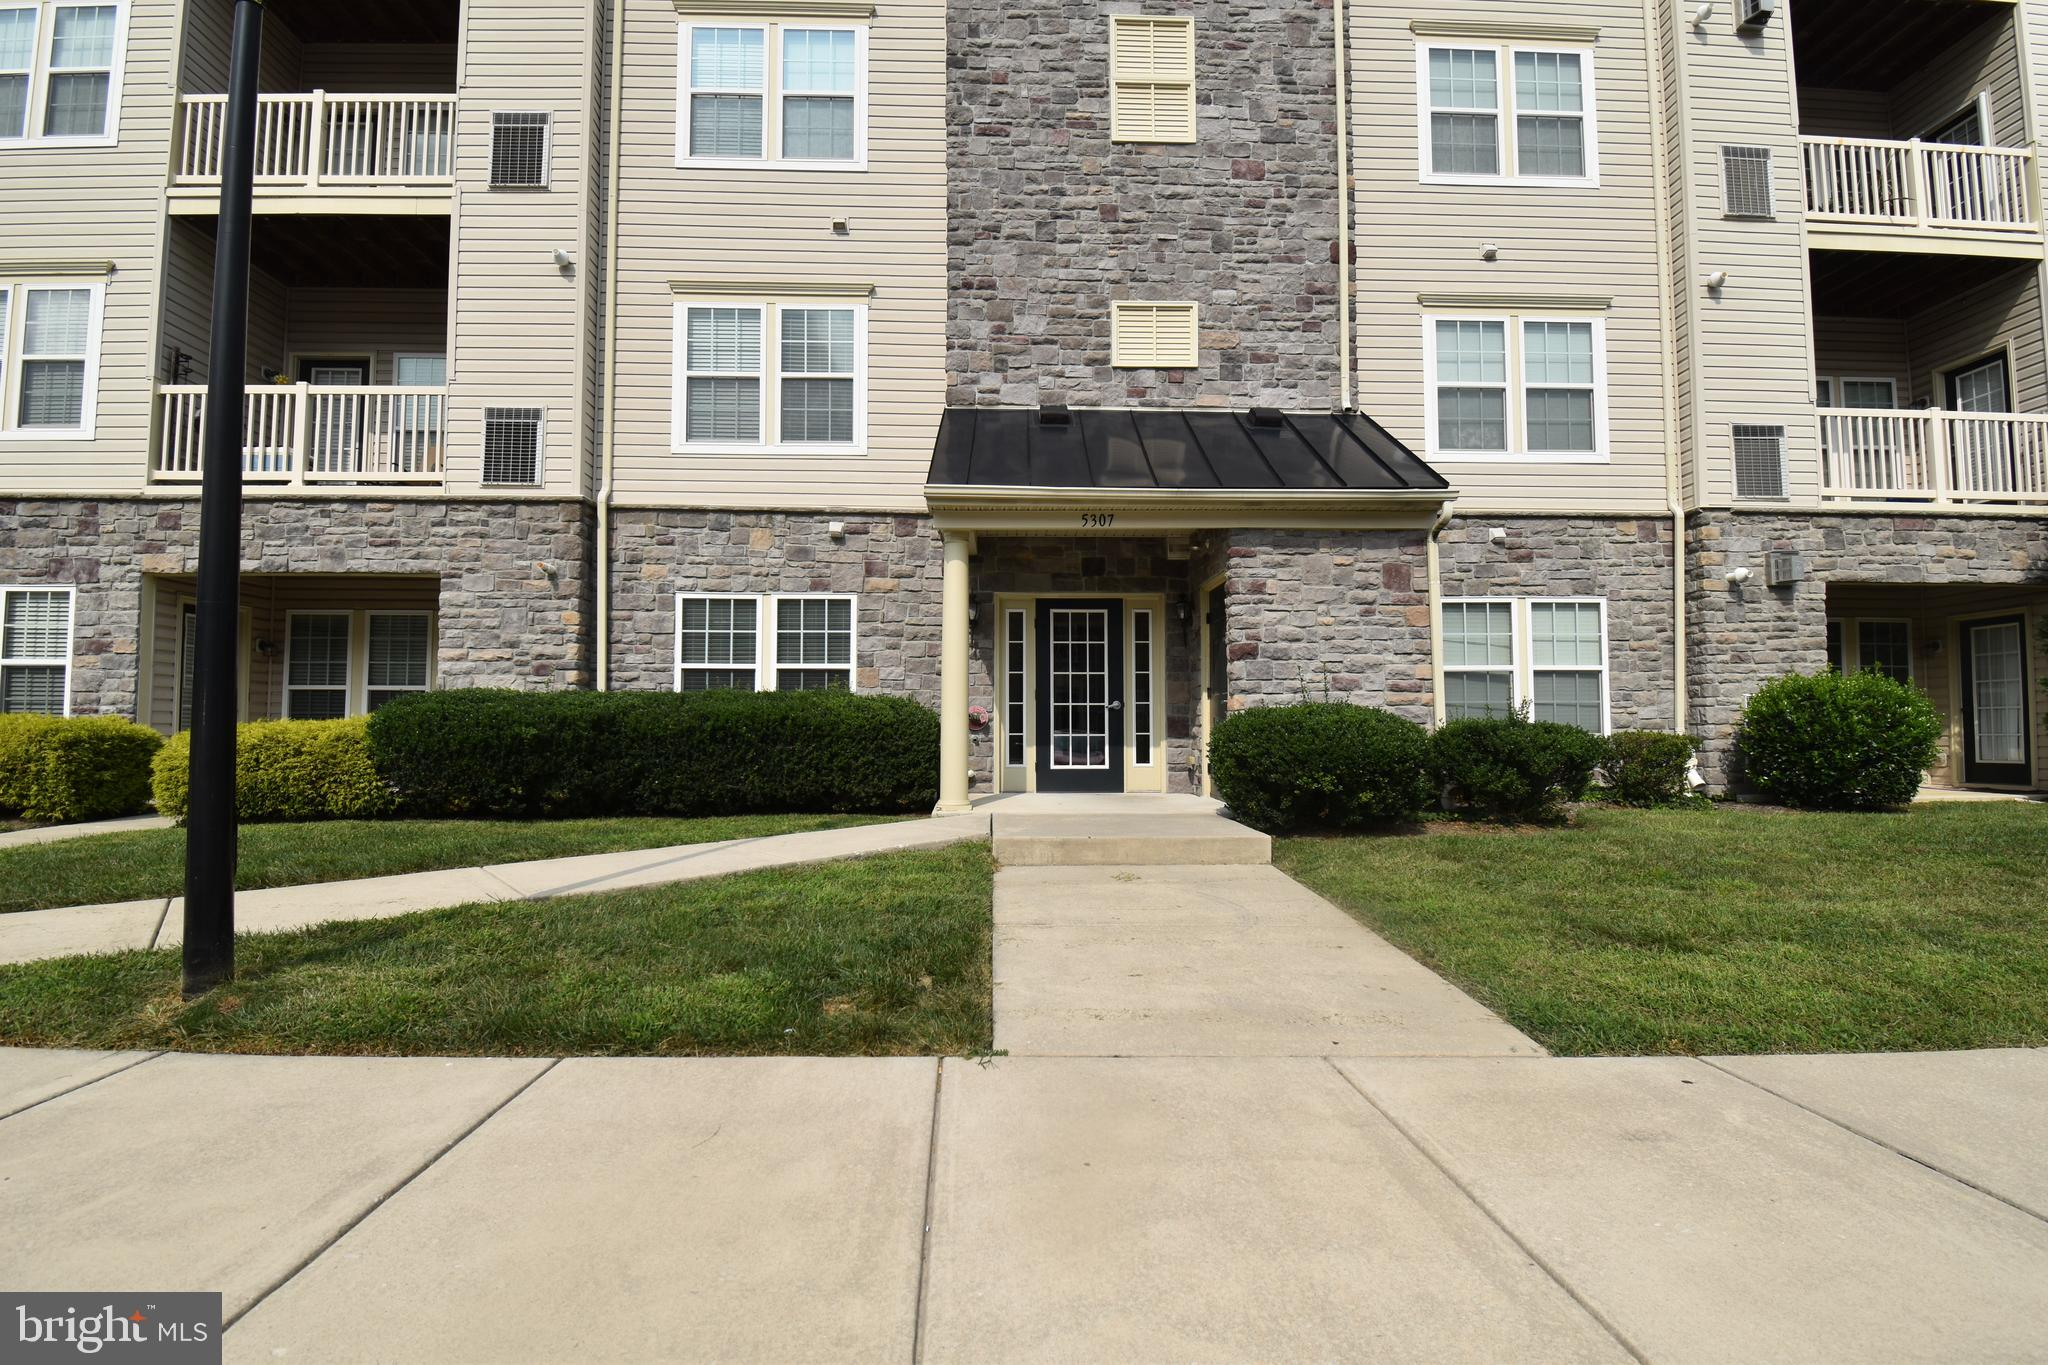 This Large Open Floor Plan Condo is Tucked Away in the Wyndholme Woods Community* Approx. 5 Minutes from Route 695. Take an Elevator Ride to your Spacious and Luxurious Third Floor Condo* It Features  a Grand Entry Foyer to your Living Room and Dining Area, Adjoined to your Walk Through kitchen with 42' Oak Cabinets, Breakfast Bar, all Stainless Steel Appliances,Laundry and Pantry*Large Master Suite with Super Bath,Double Sink, Walk-in Closet Plus Wall Closet Both with Custom California  Closet Organizer*Large Second Bedroom That Adjoins Hall bath, Could be Second Master Bedroom*Plus an Open Office or Sun room with Connecting Rear Balcony.